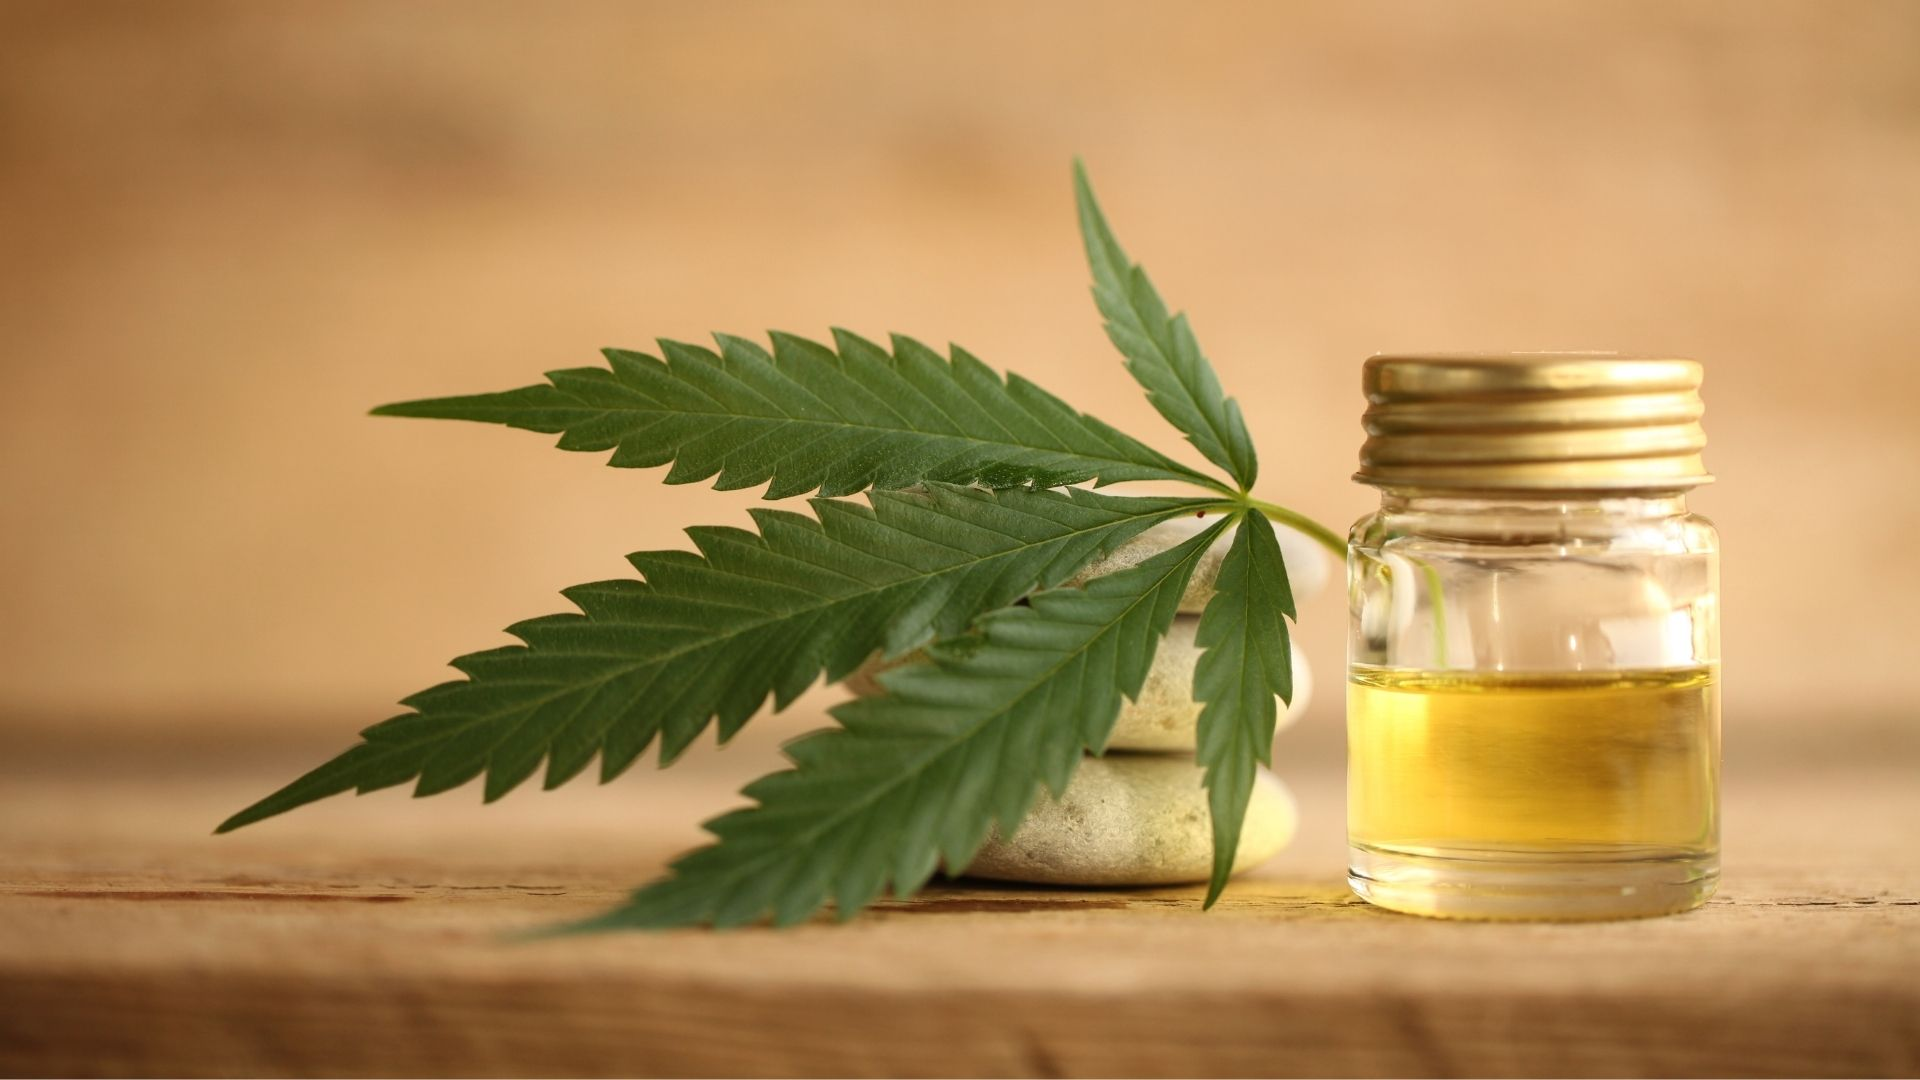 A jar of CBD oil with a plant leaf sitting on a wooden worktop